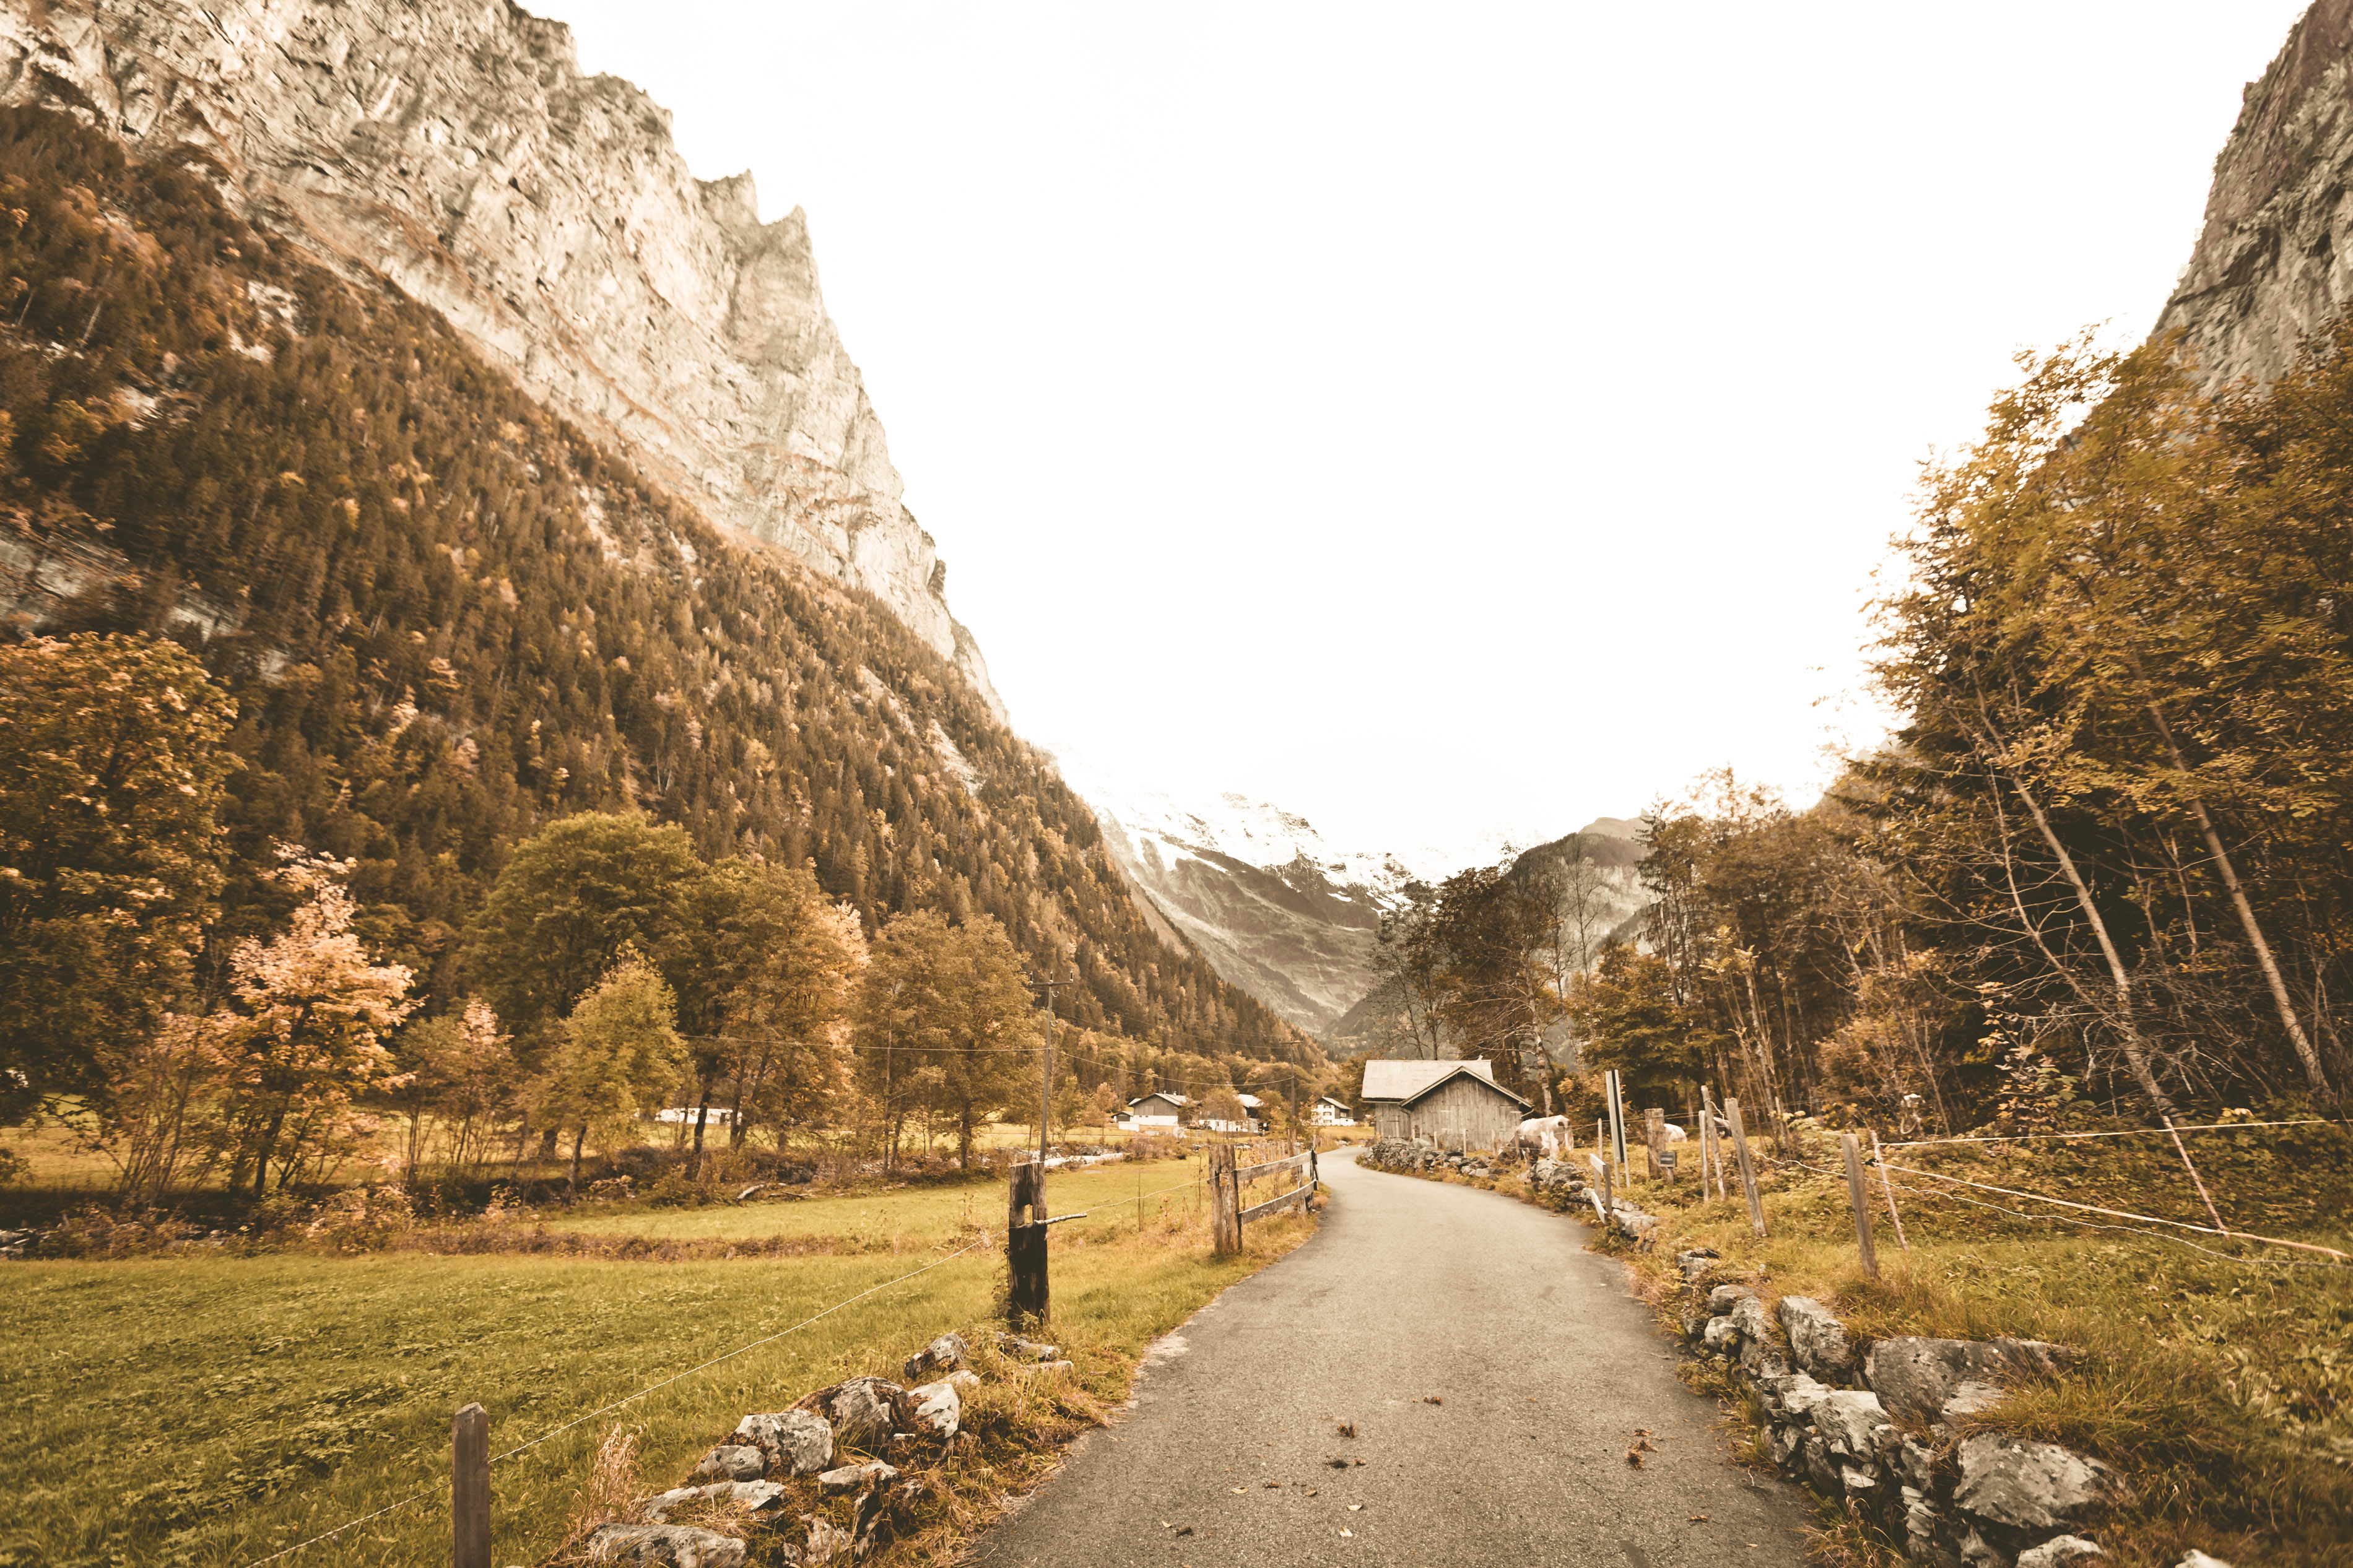 Heading down the path in the Swiss Alps